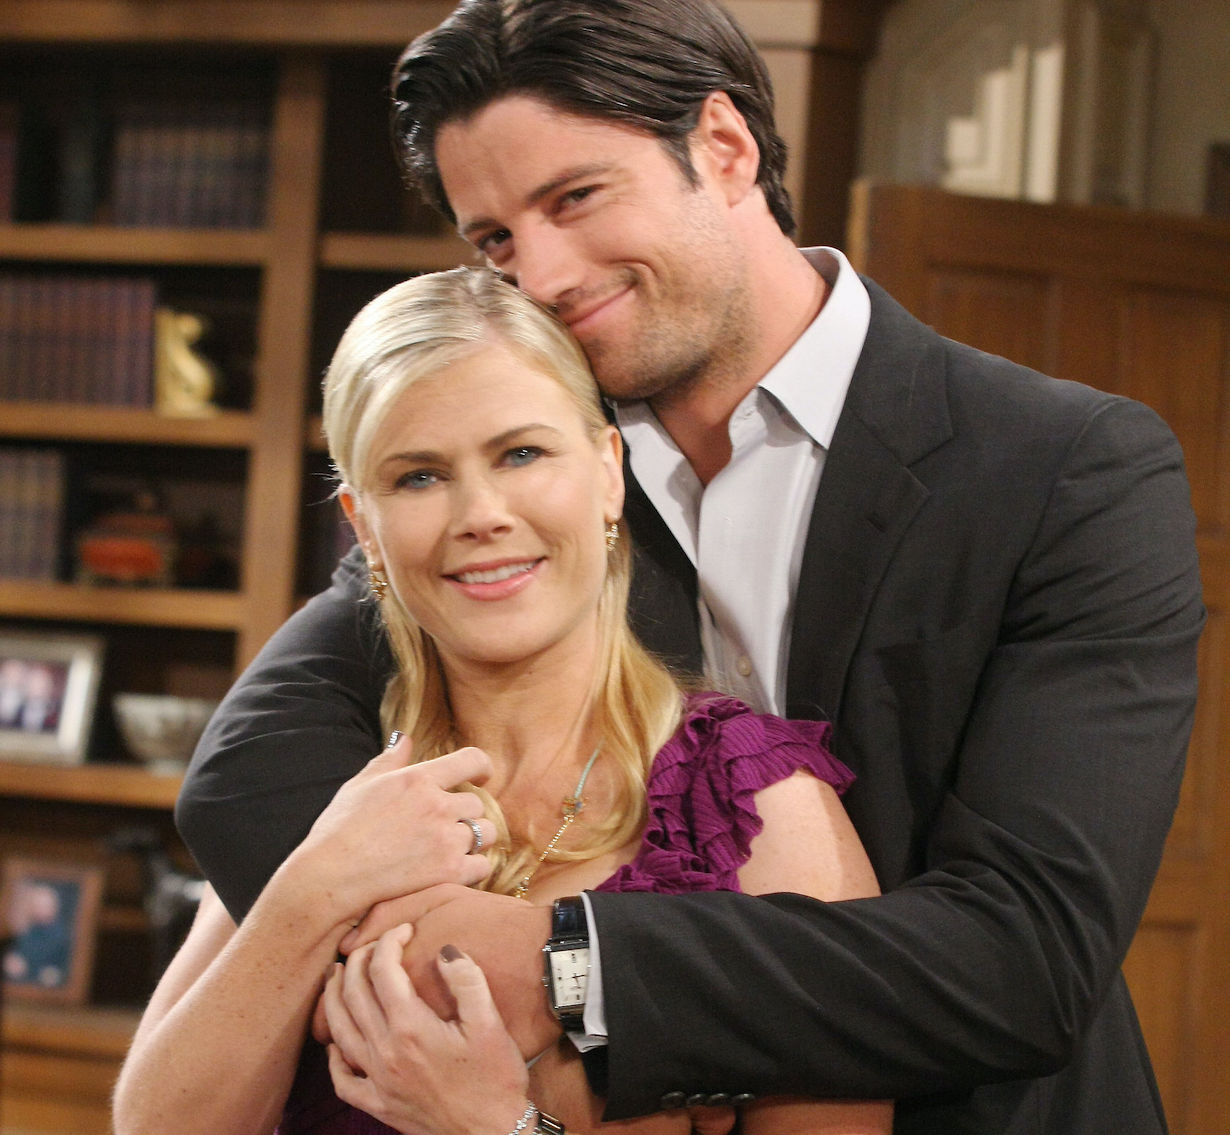 James Scott as E.J. and Alison Sweeney as Sami on Days of Our Lives